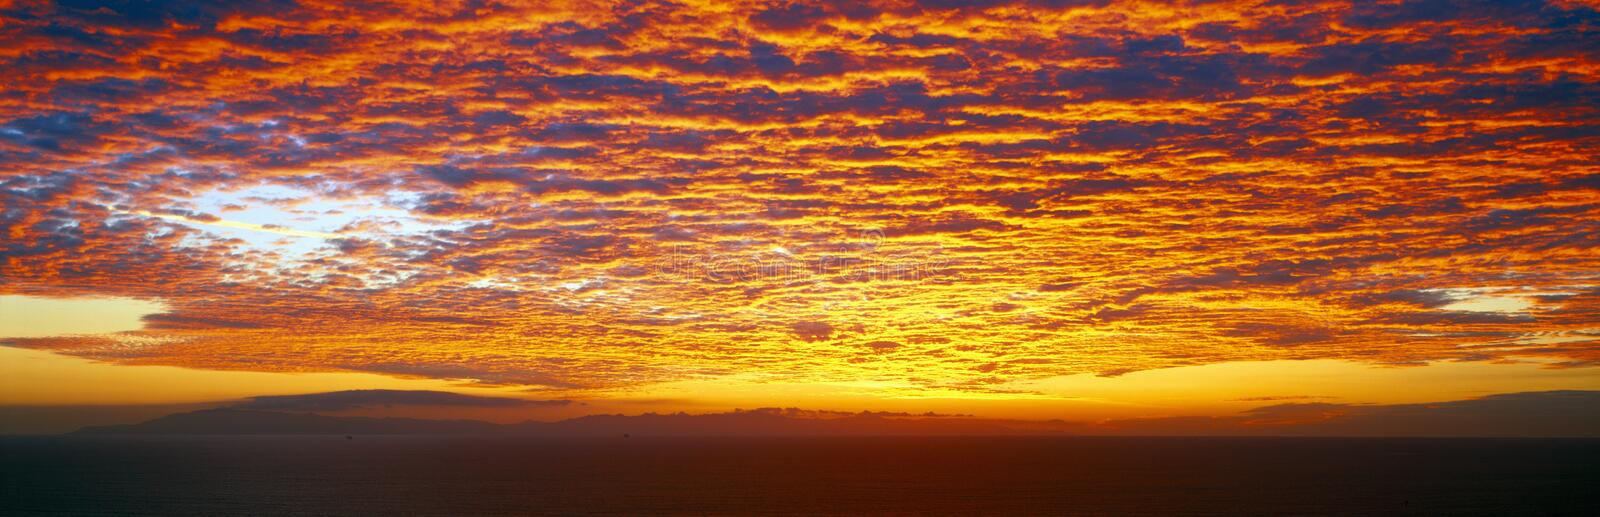 Download Sunset Over Channel Islands Stock Photo - Image: 23172000